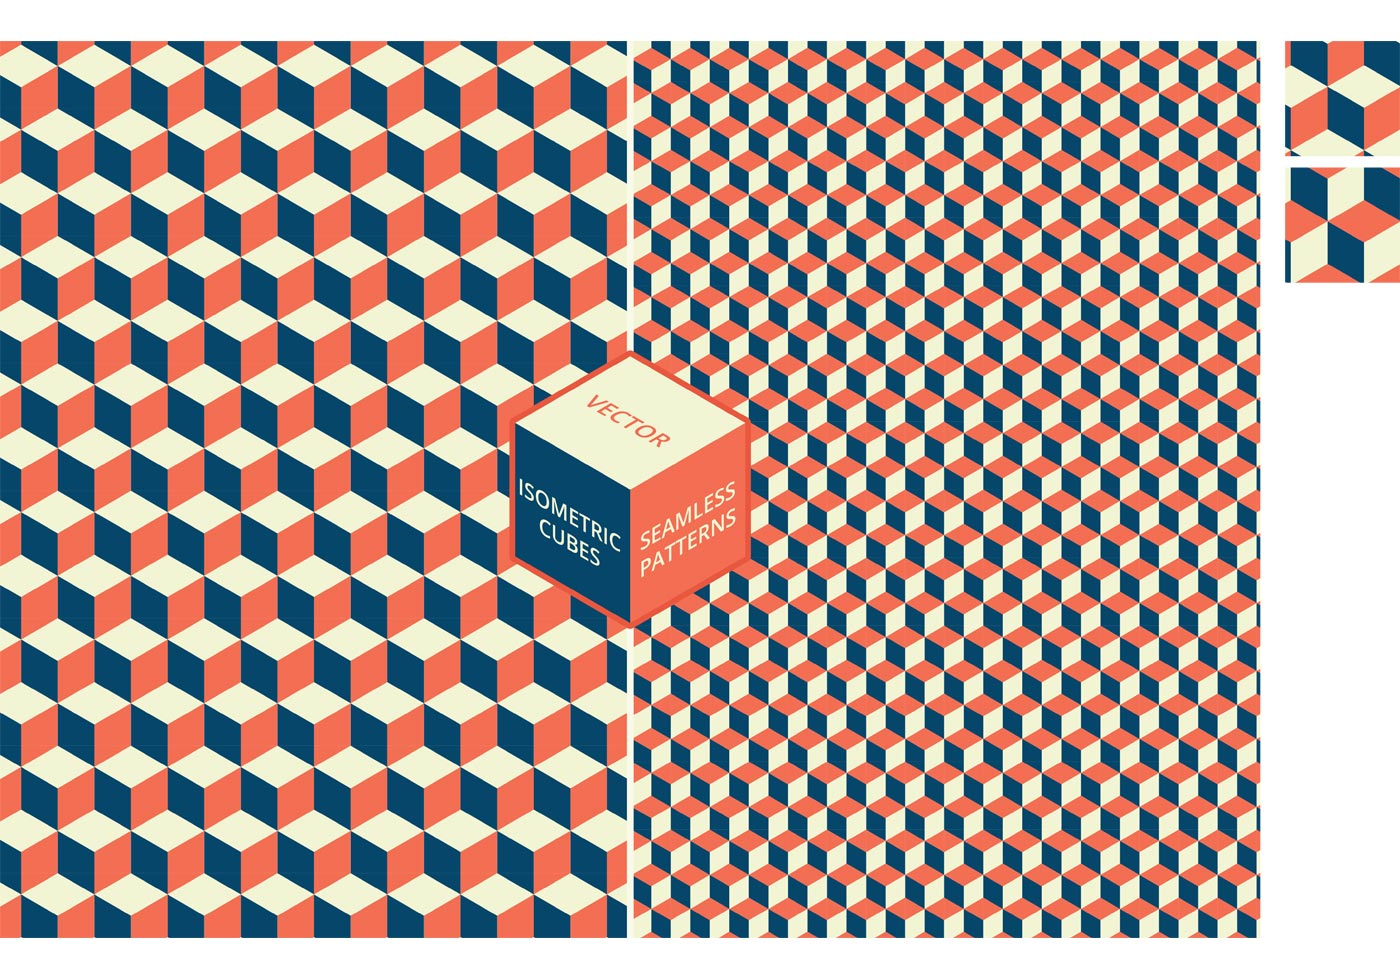 Isometric Cubes Seamless Vector Patterns - Download Free ...